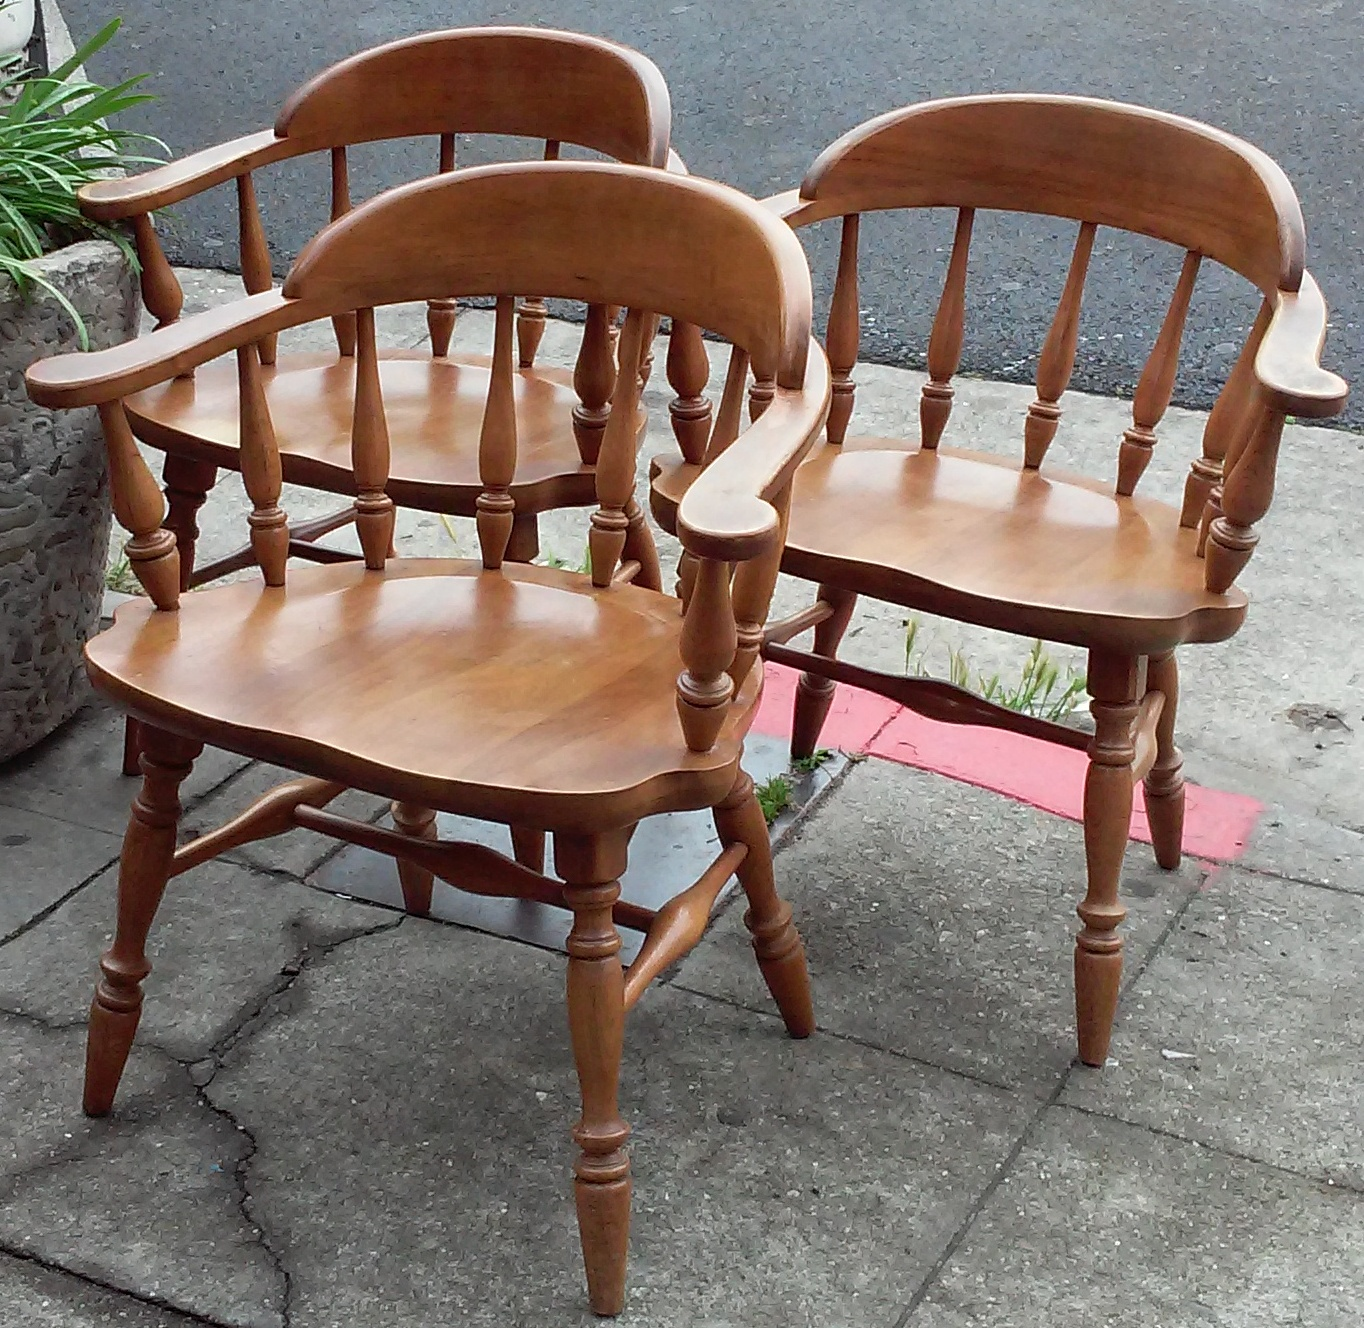 UHURU FURNITURE & COLLECTIBLES: SOLD - ** REDUCED ...